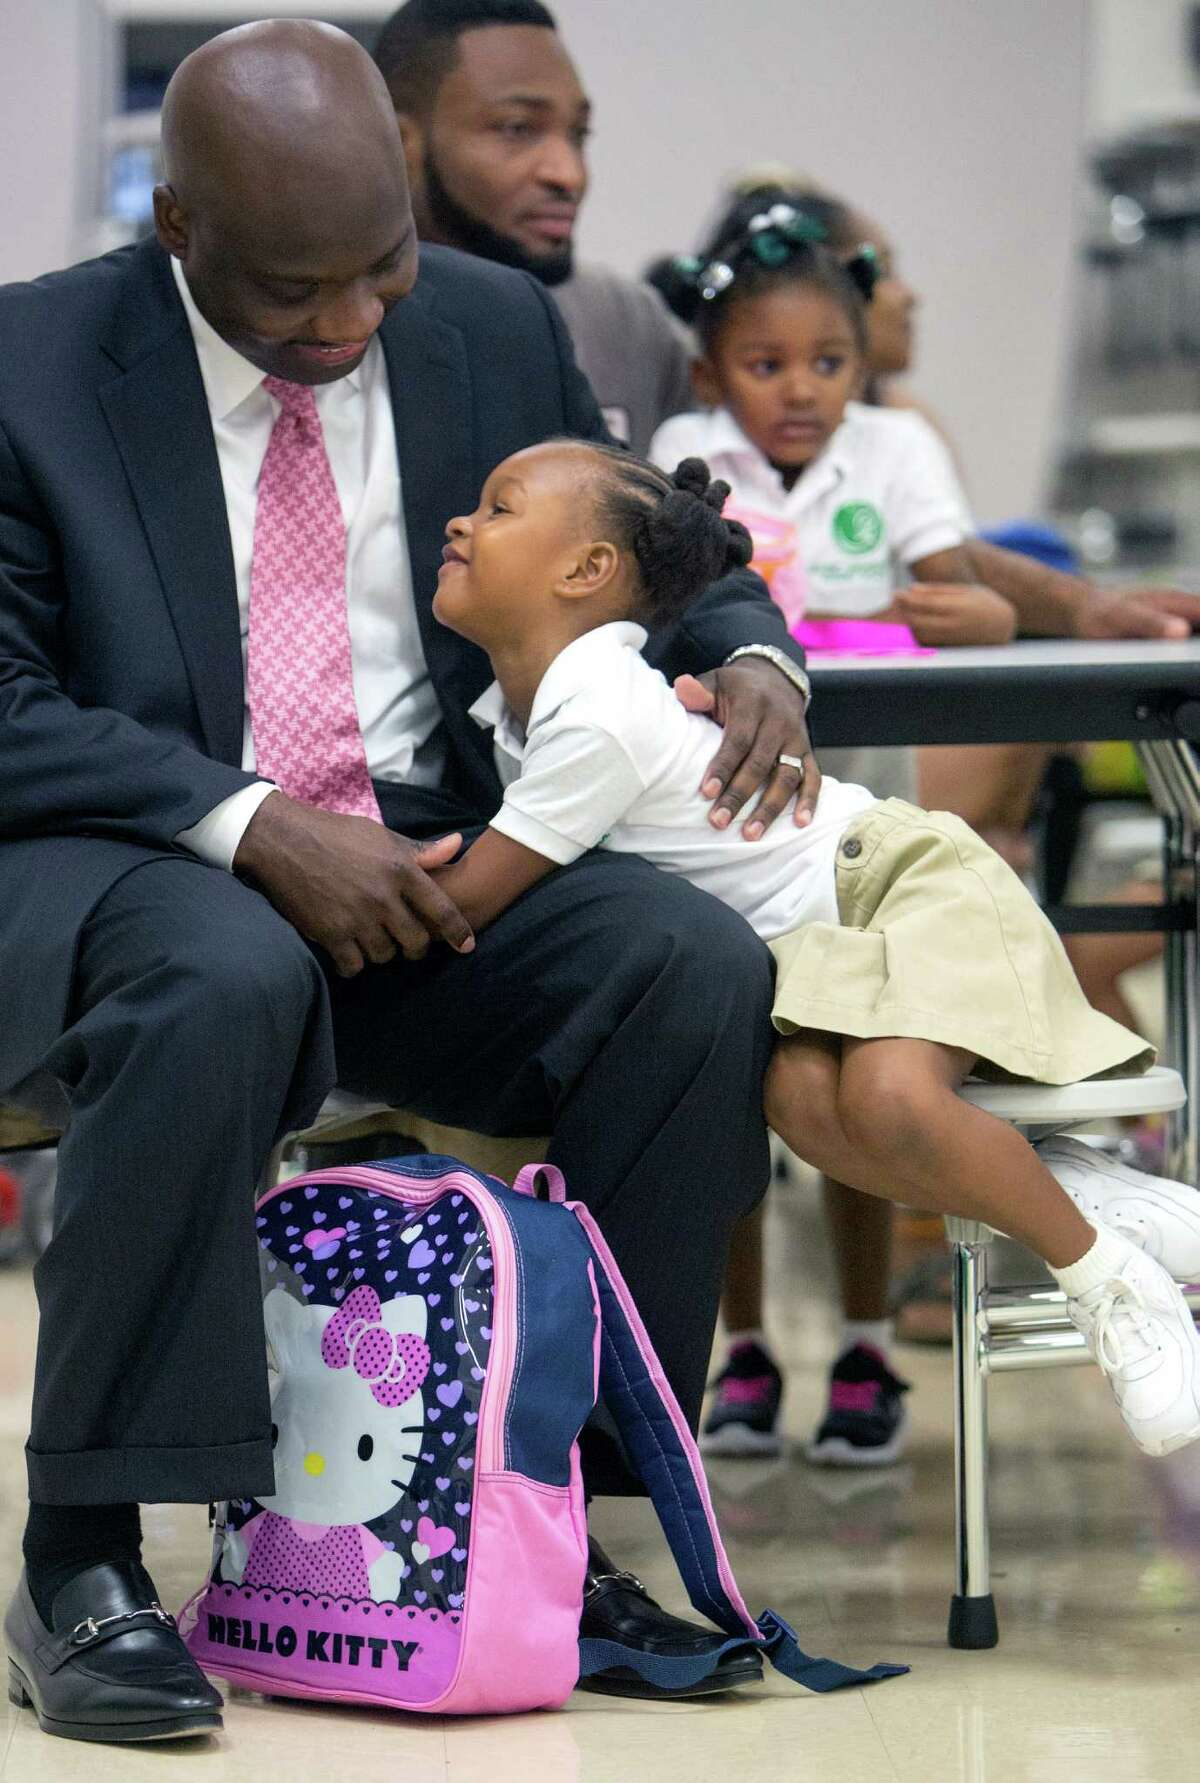 Lannie Milon and his daughter Ariyah, 4, wait for school to start at Houston Independent School District's Arabic Immersion Magnet School on Monday.